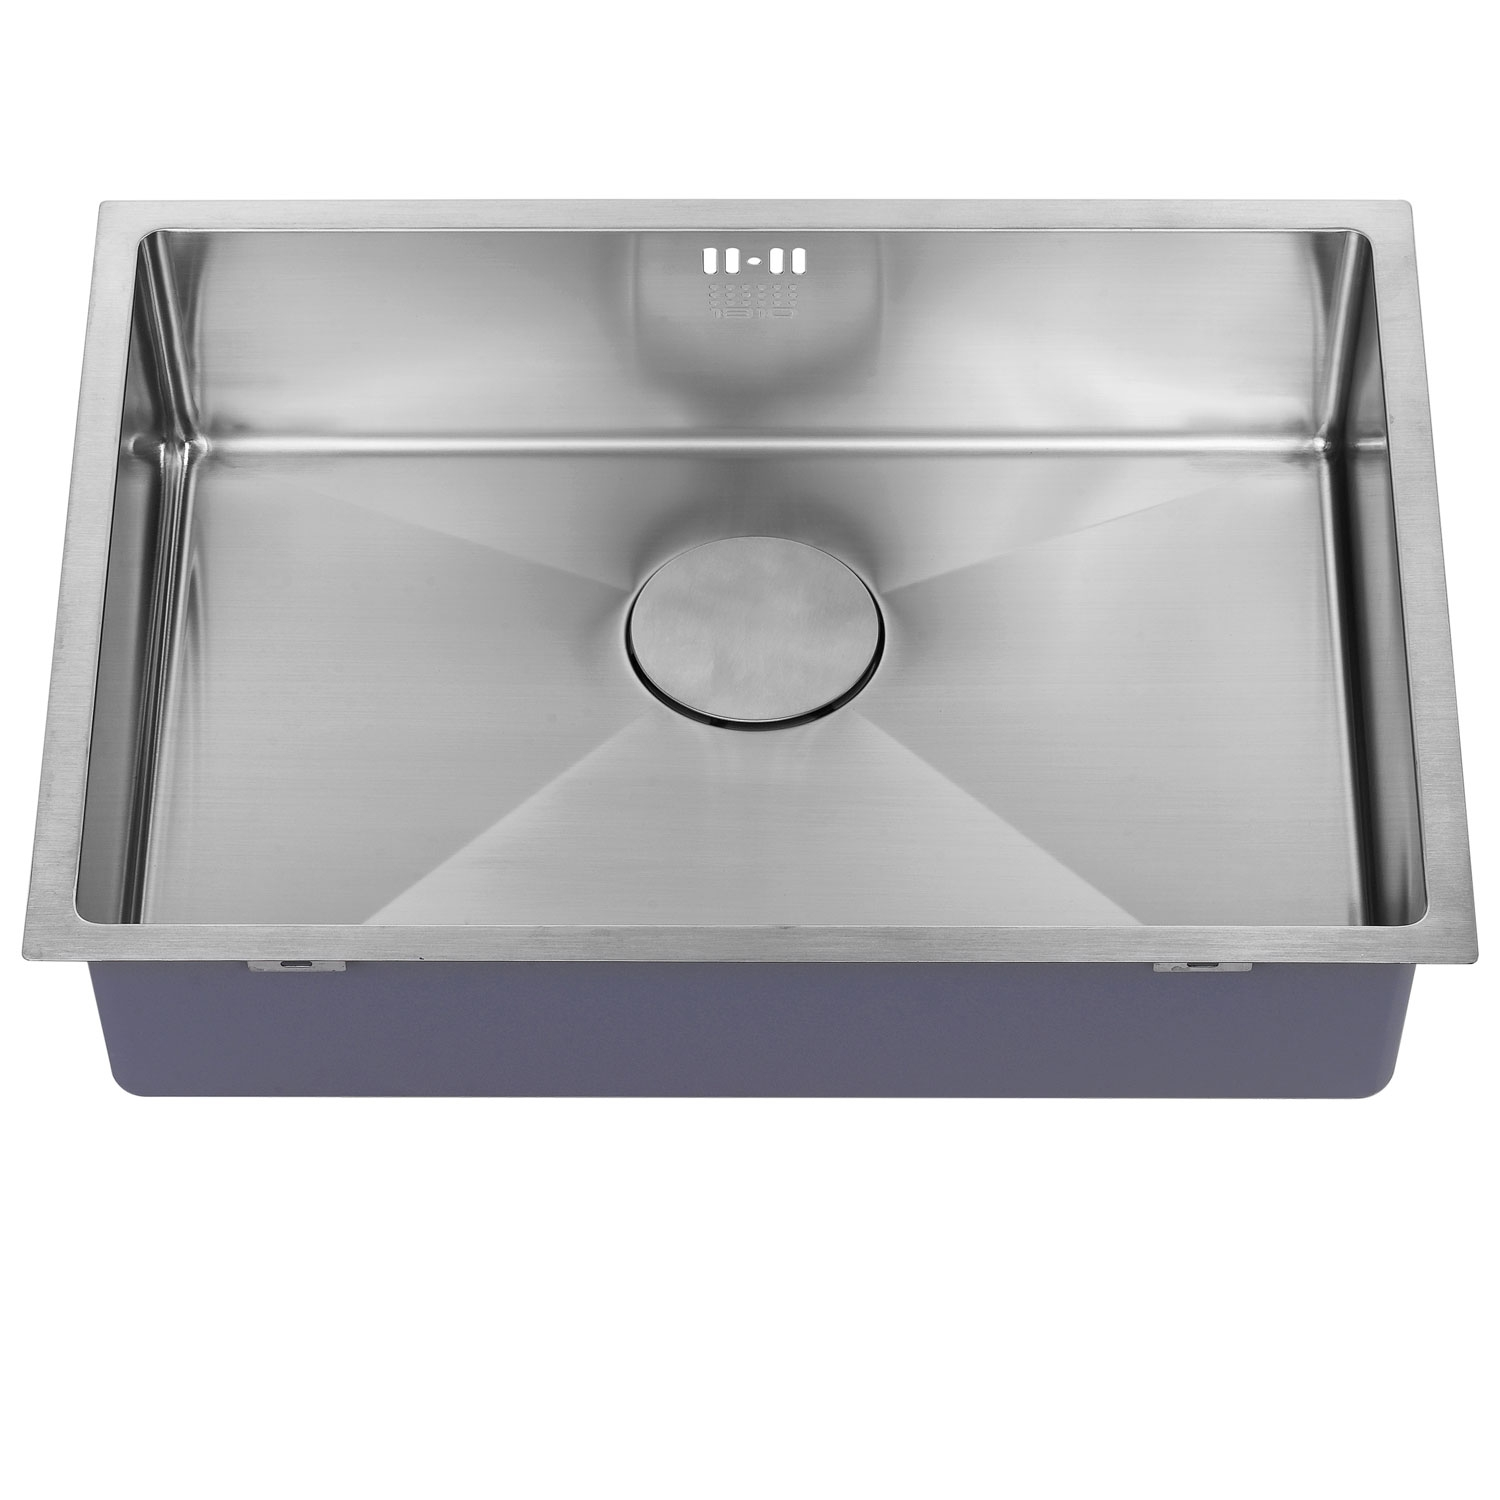 The 1810 Company Zenuno15 550U 1.0 Bowl Kitchen Sink - Stainless Steel